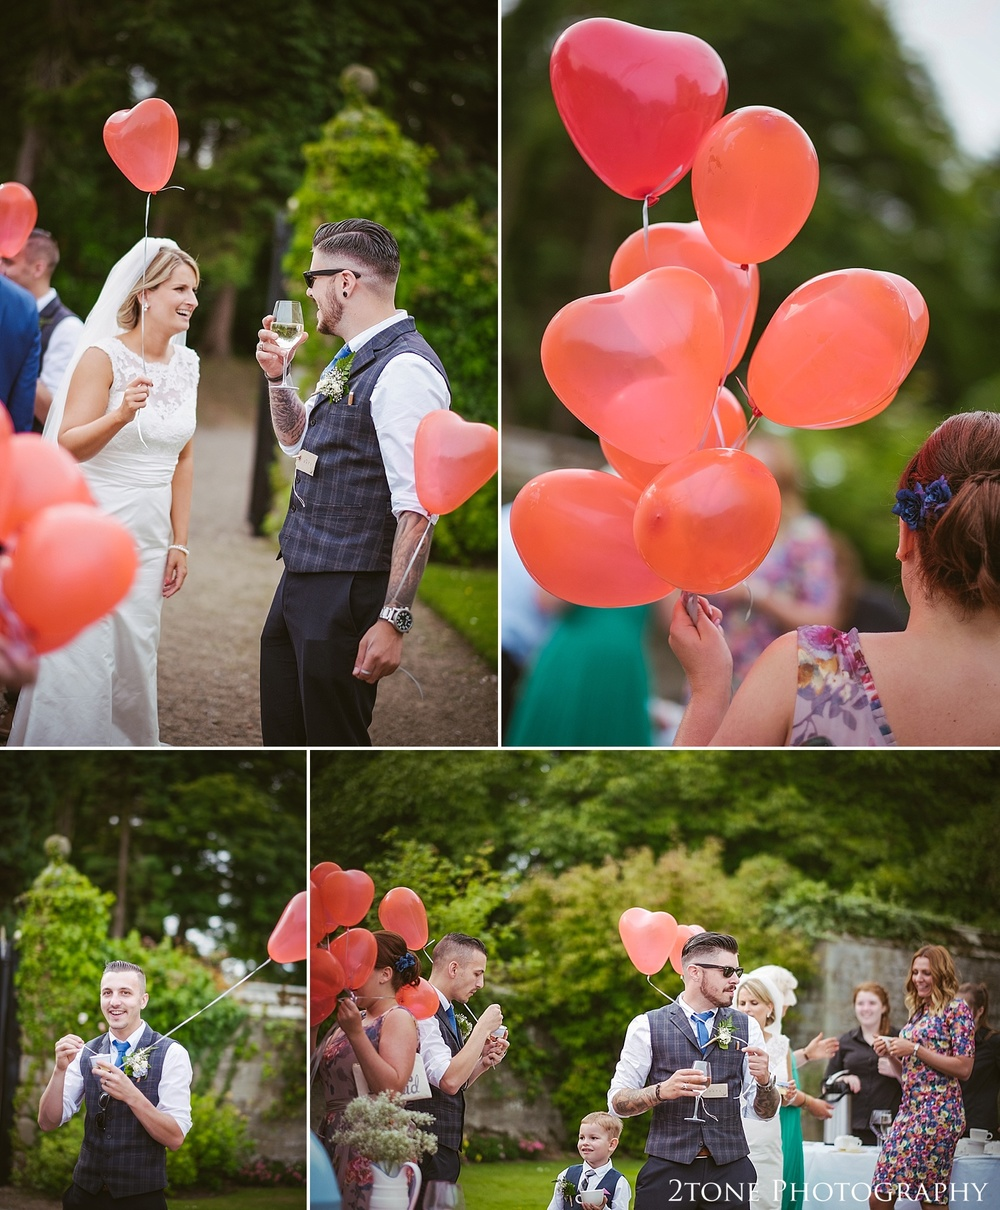 Wedding balloons.  Wedding photography at Guyzance Hall by wedding photographers www.2tonephotography.co.uk